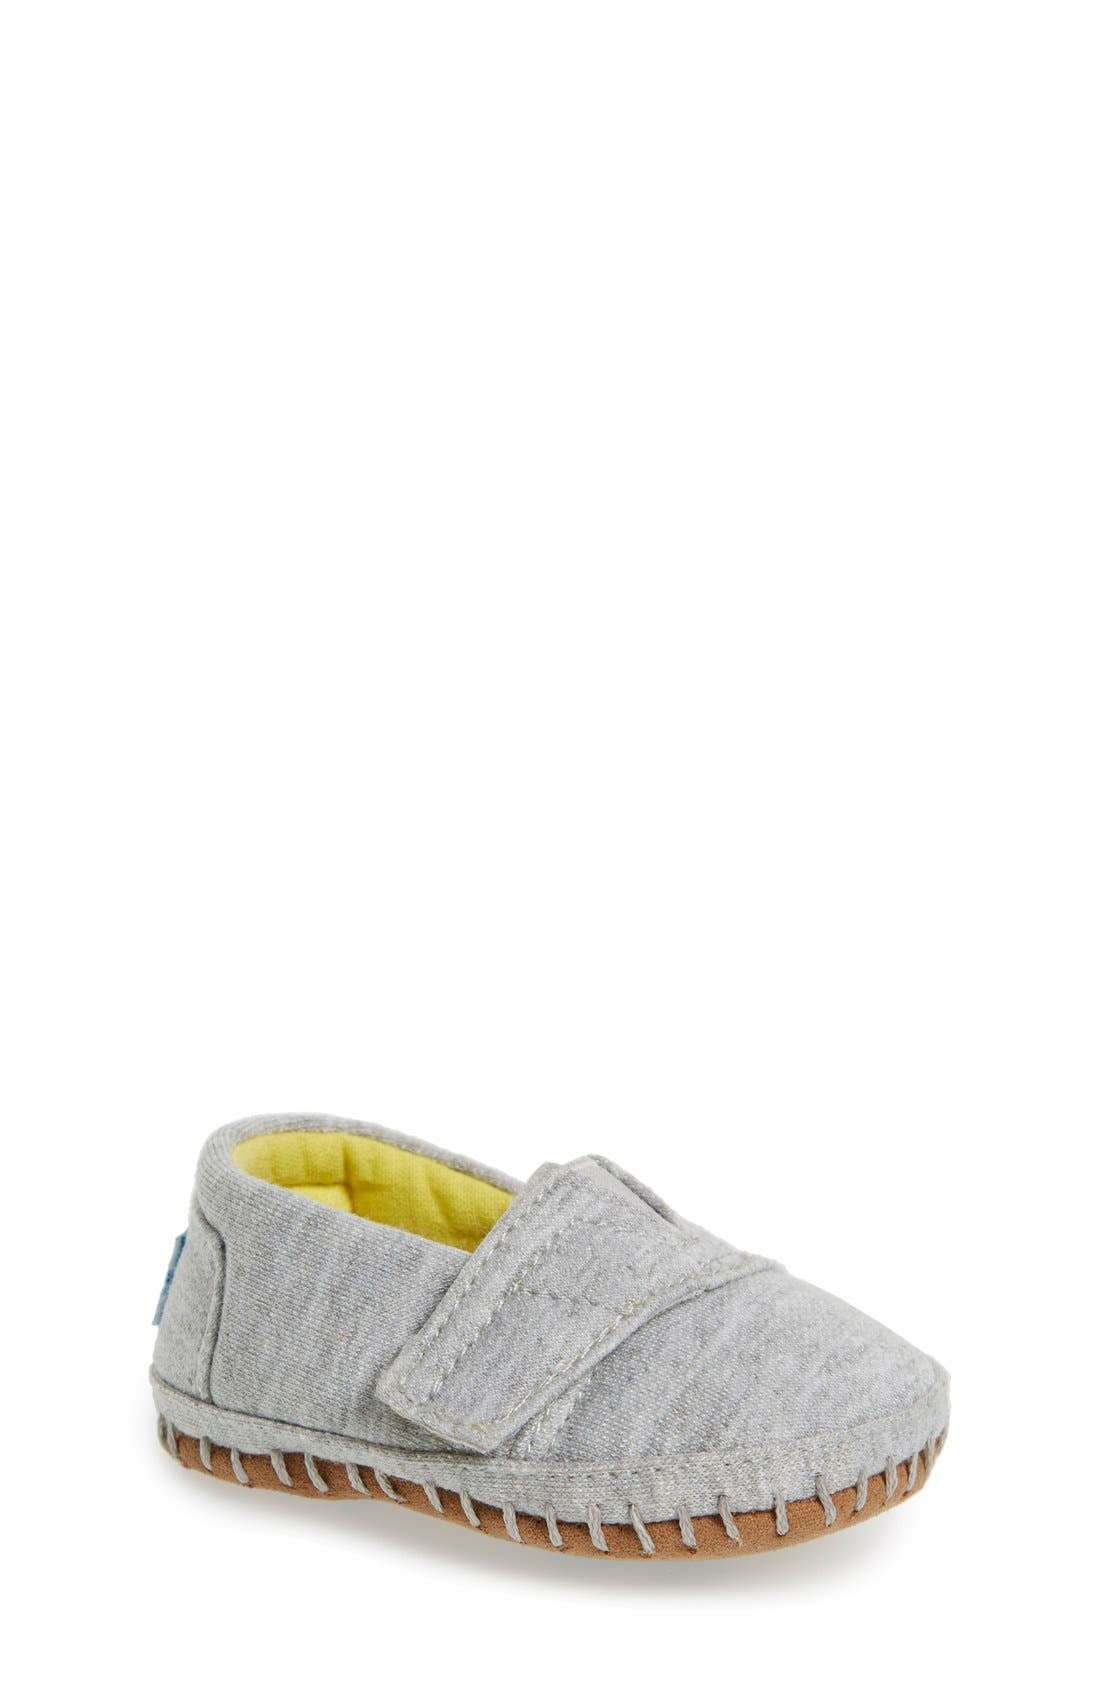 Alpargata Chambray Crib Shoe,                             Main thumbnail 1, color,                             GREY